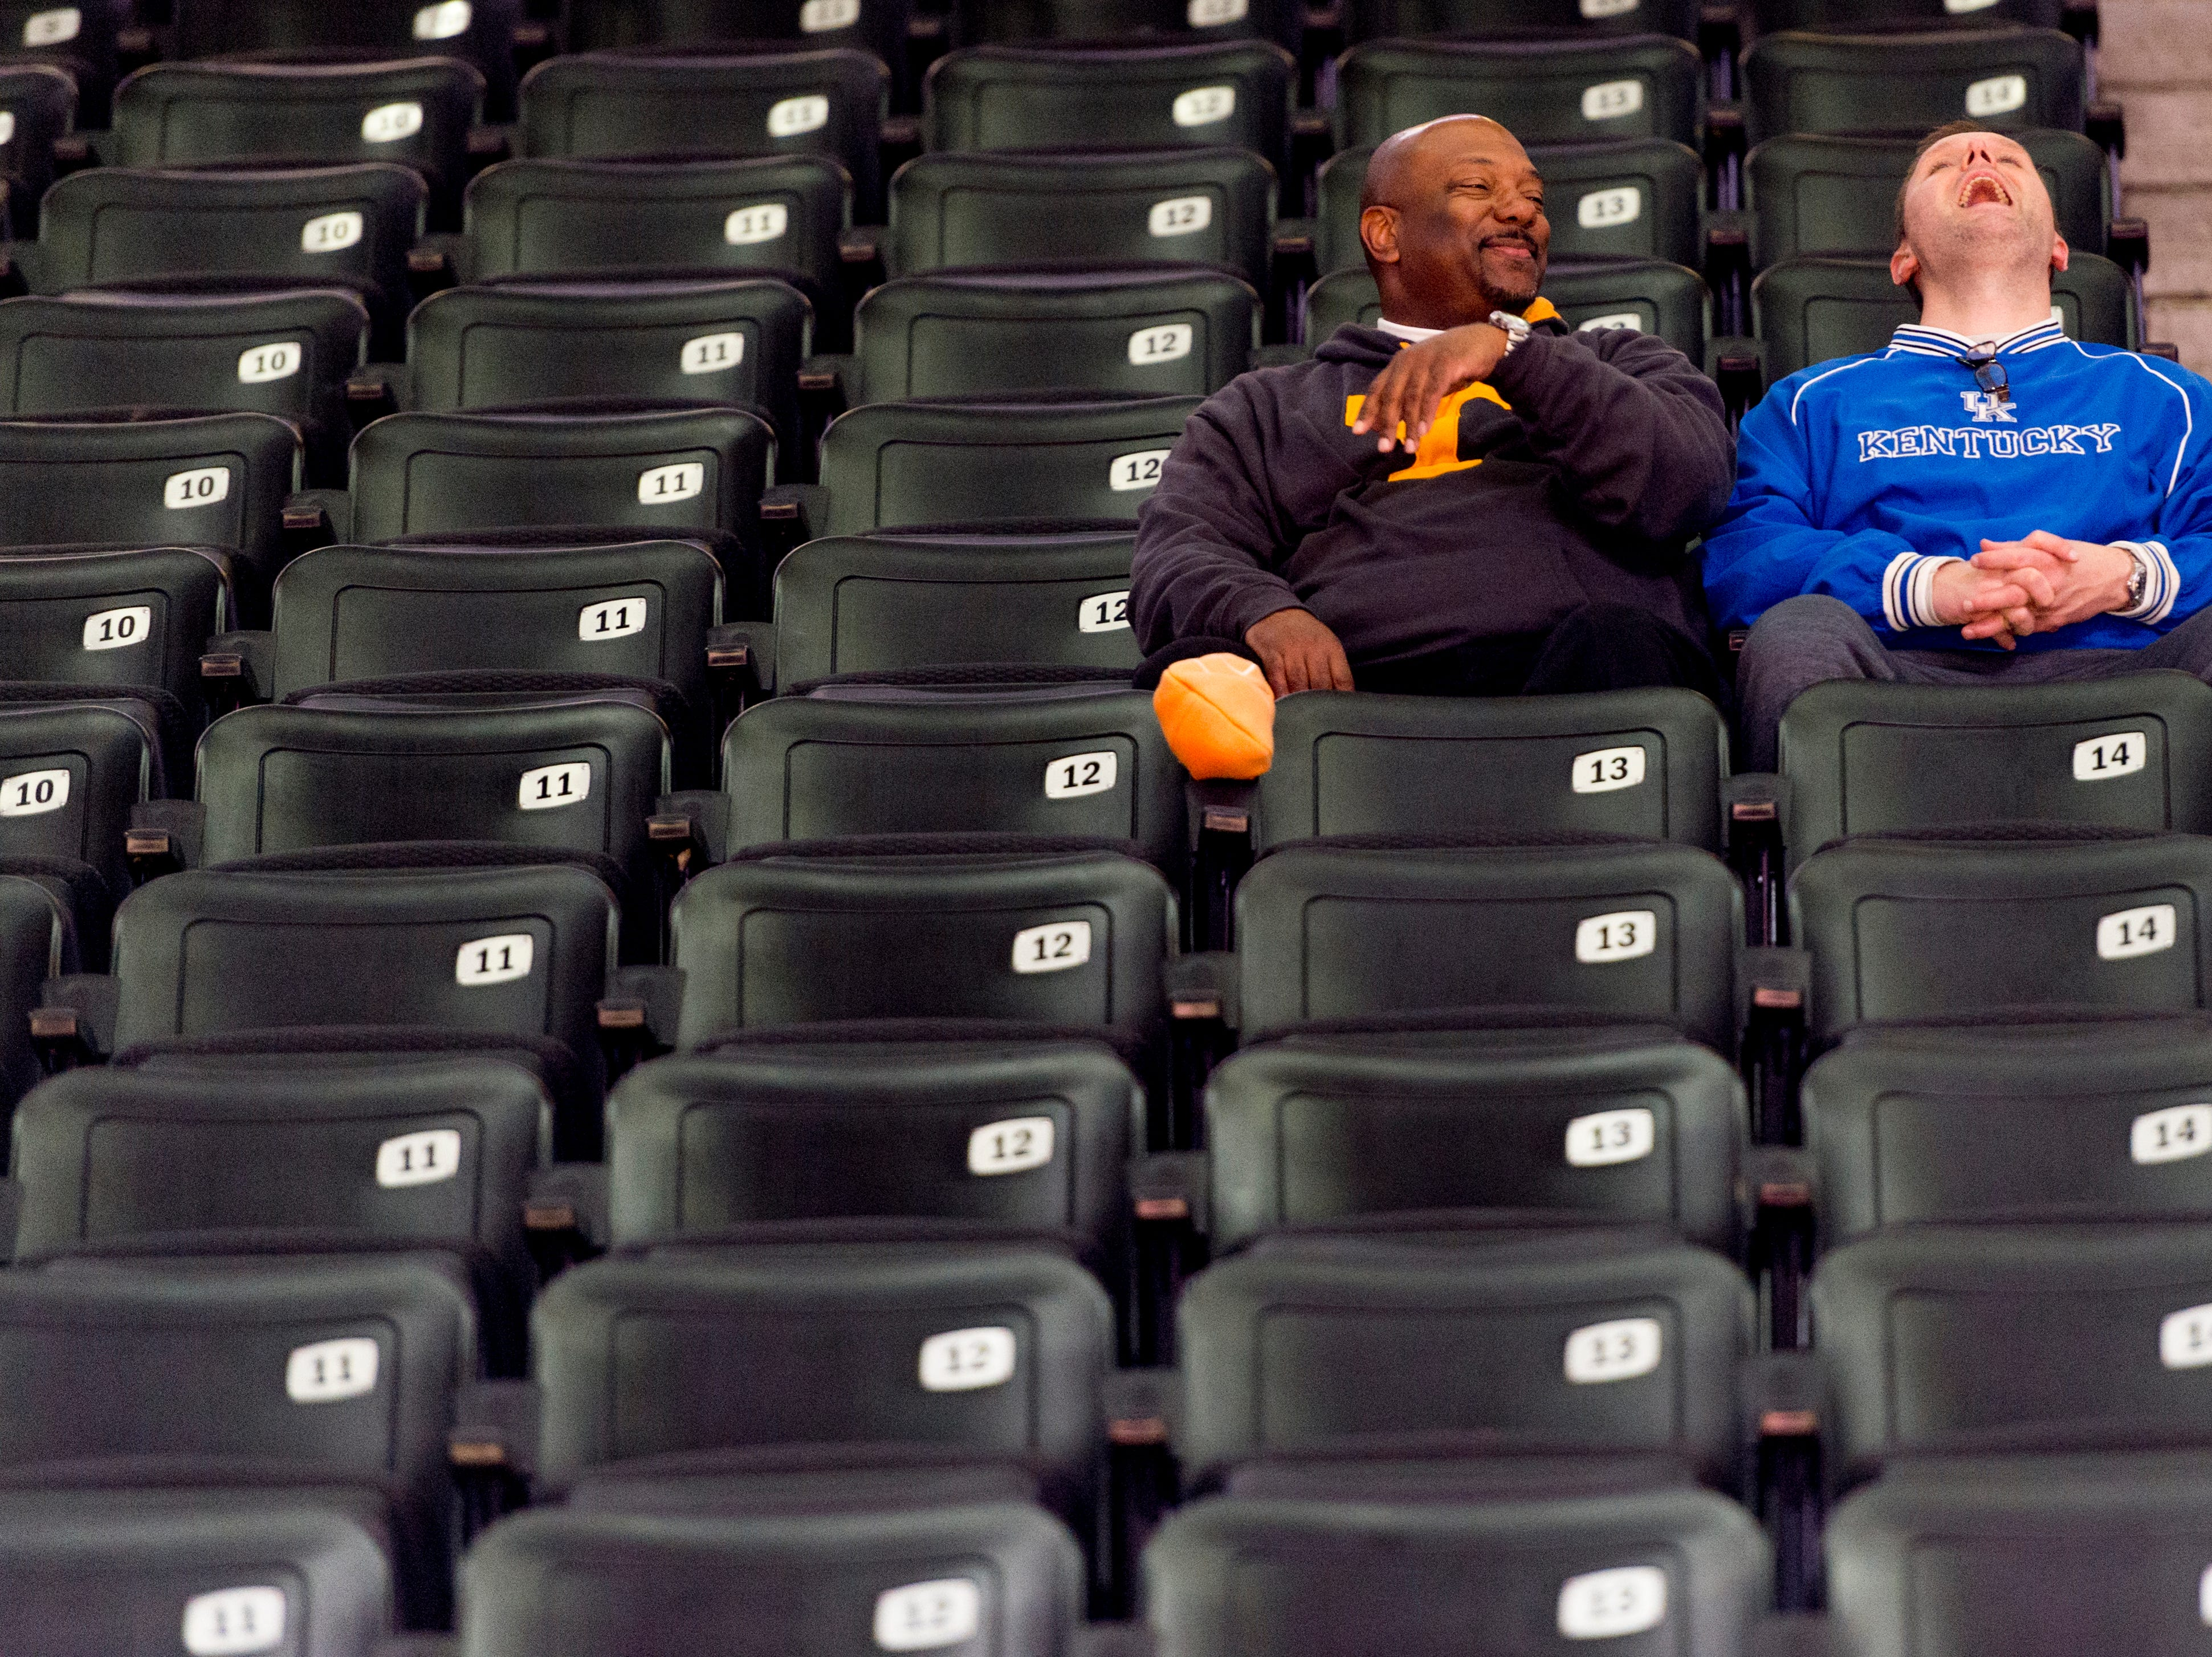 A Tennessee and Kentucky fan share a laugh during a game between Tennessee and Kentucky at Thompson-Boling Arena in Knoxville, Tennessee on Saturday, January 6, 2018.